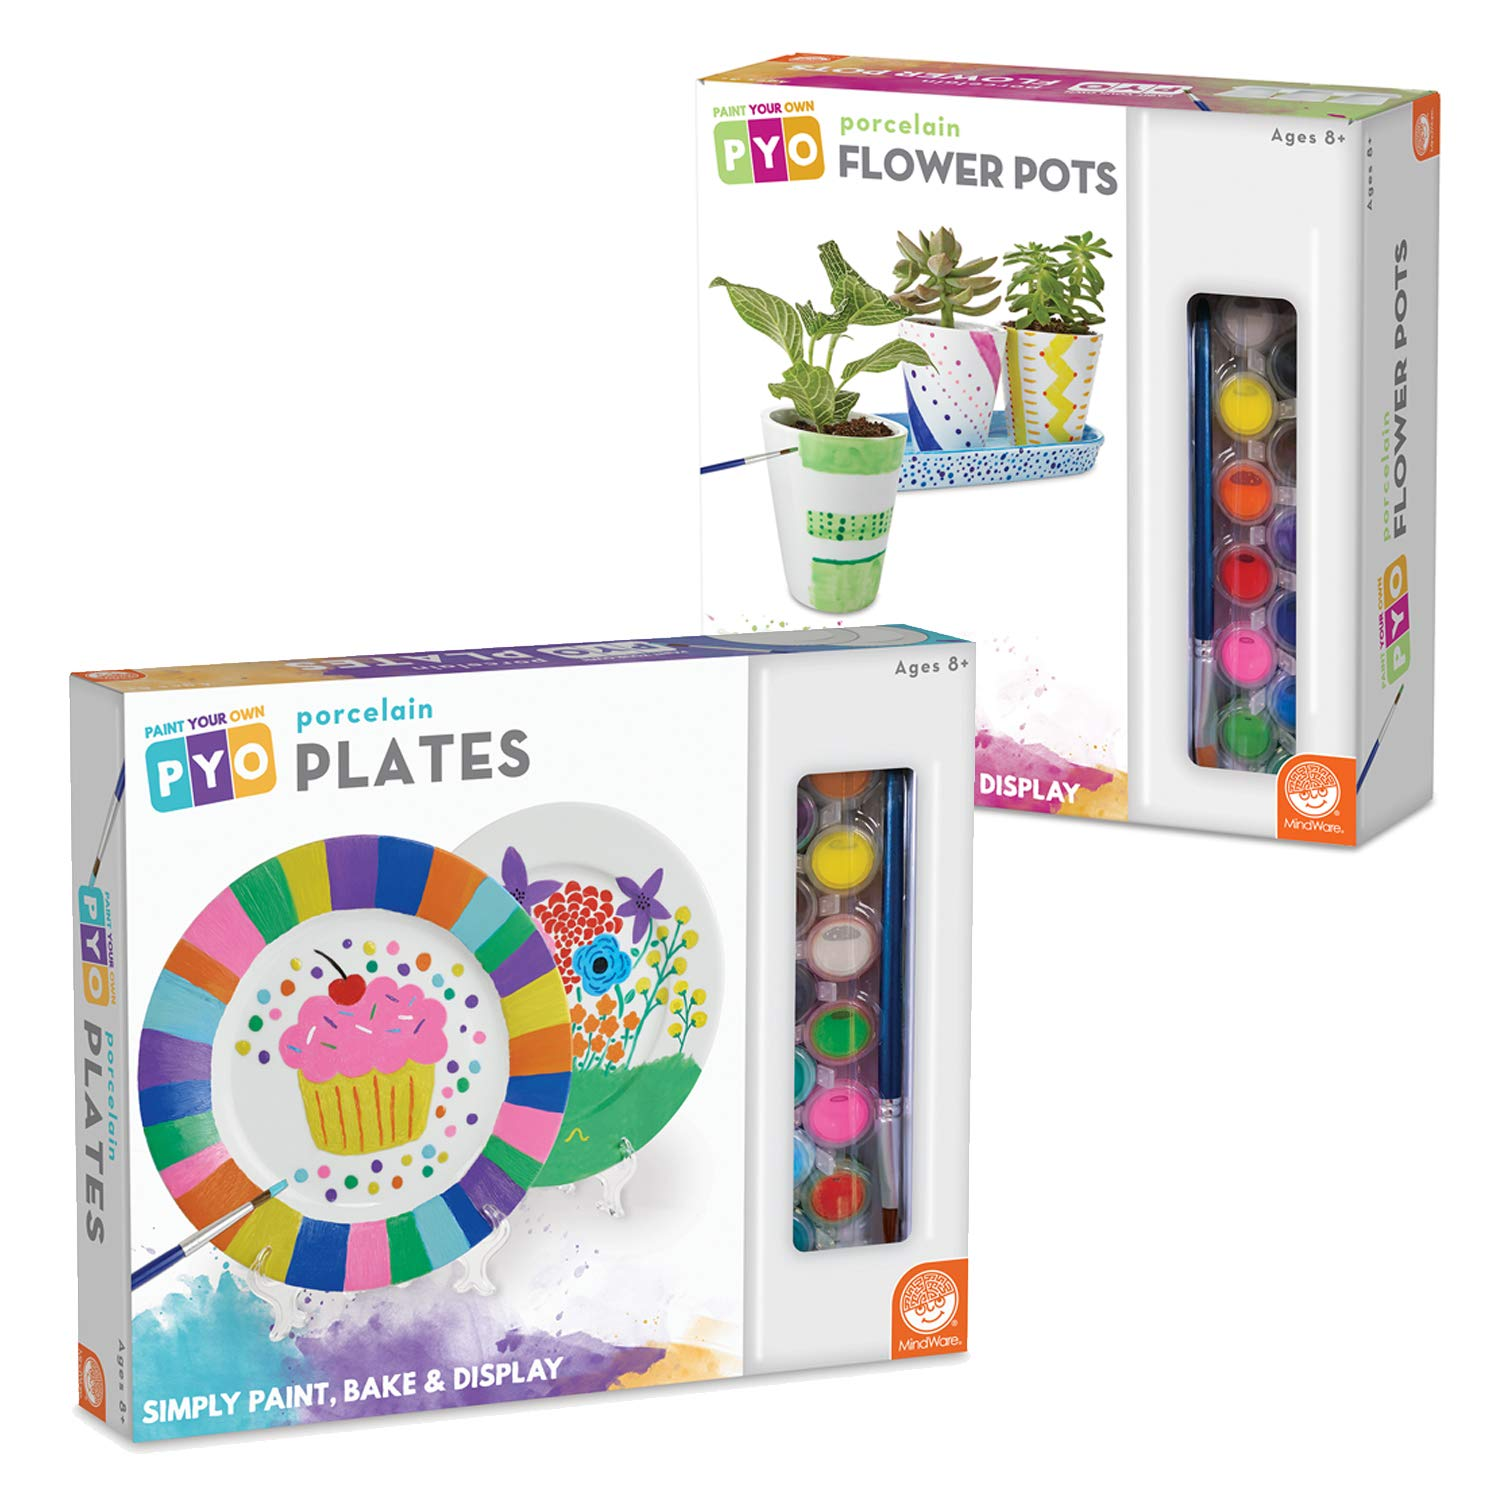 MindWare Paint Your Own Porcelain Plates and Flower Pots: Set of 2 by MindWare